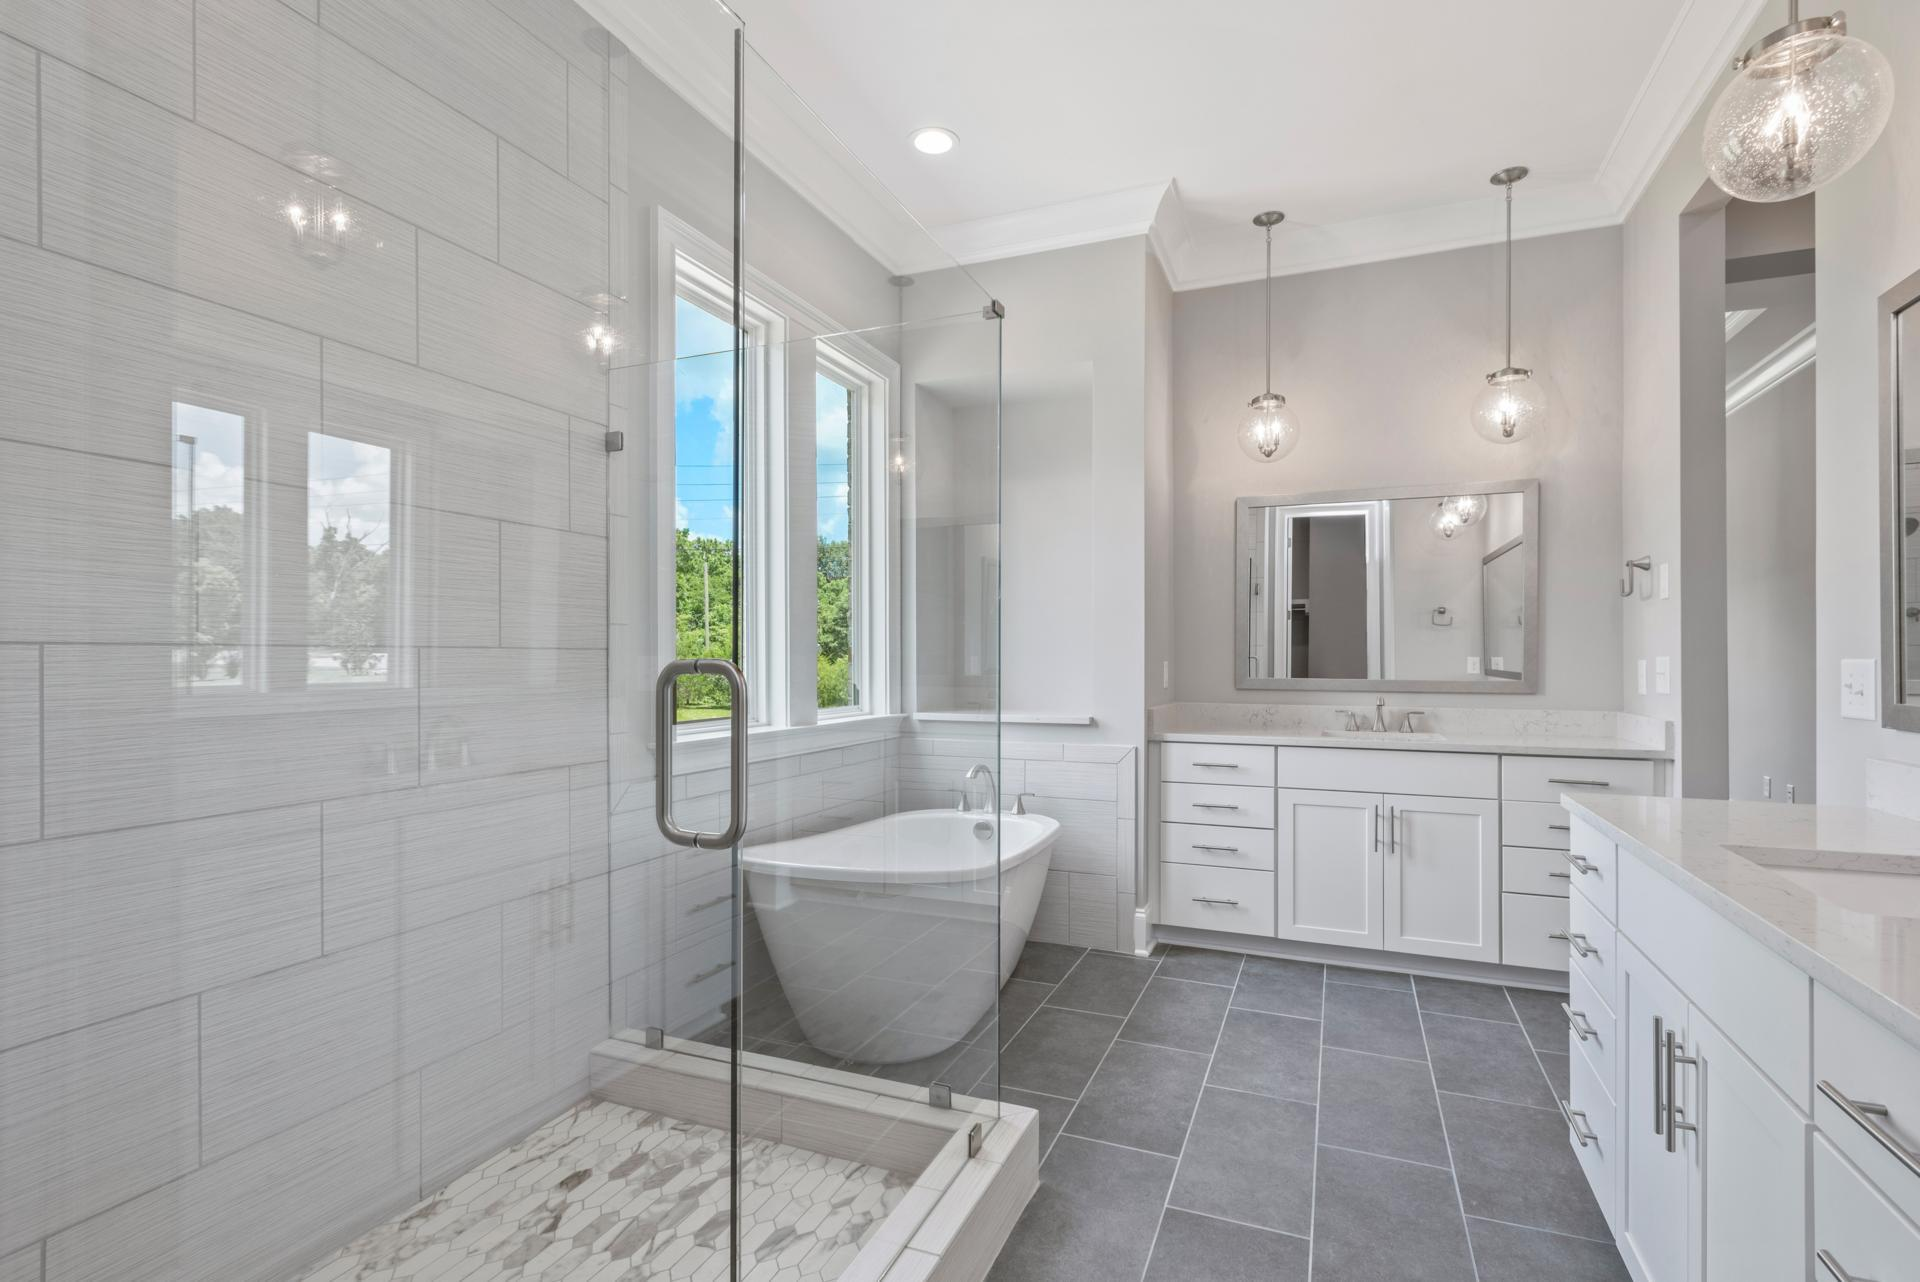 Bathroom featured in the Somerville By Drees Homes in Nashville, TN